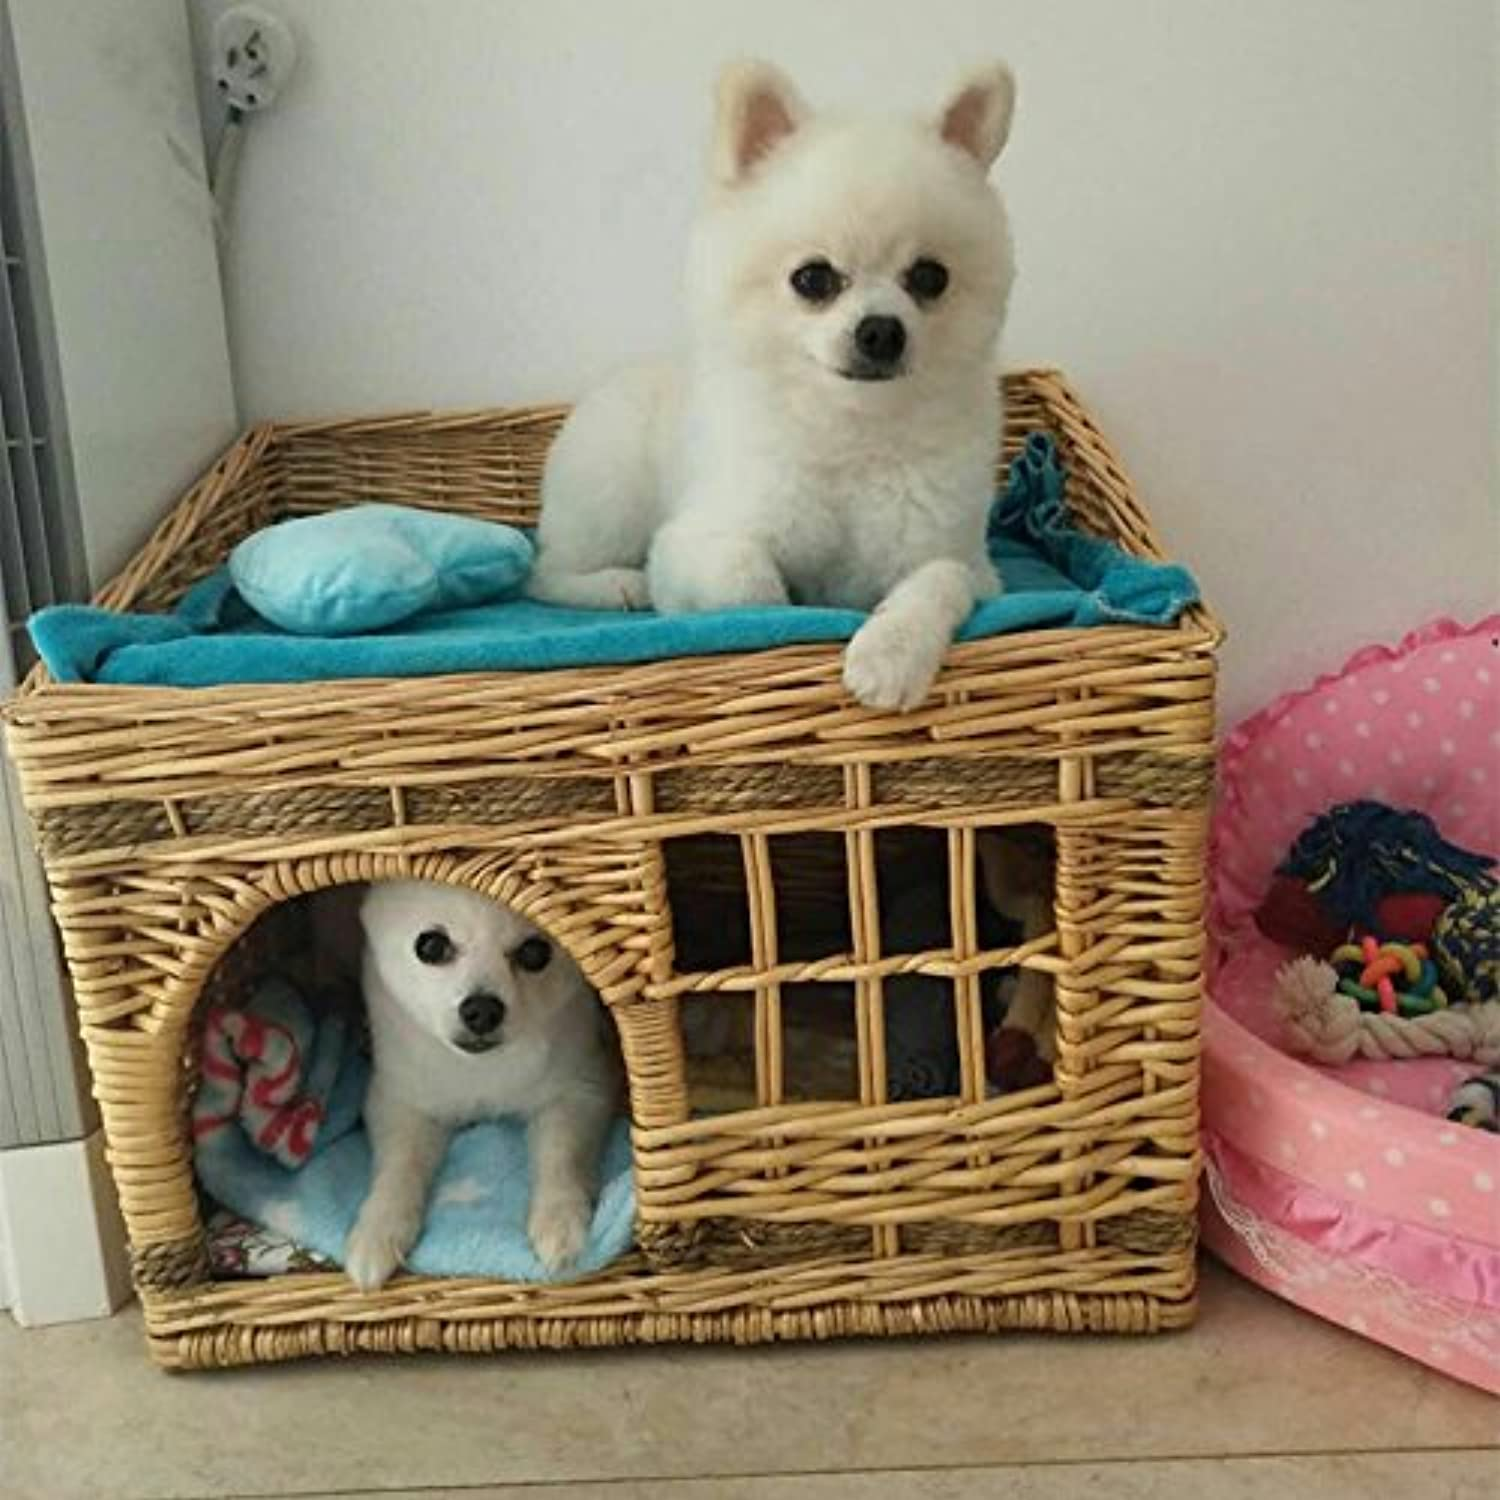 Baiao Four Seasons Available Square Two Level Rattan Wicker Pet(Small Dog Cat Rabbit) Dog Houses with Cushion Original color